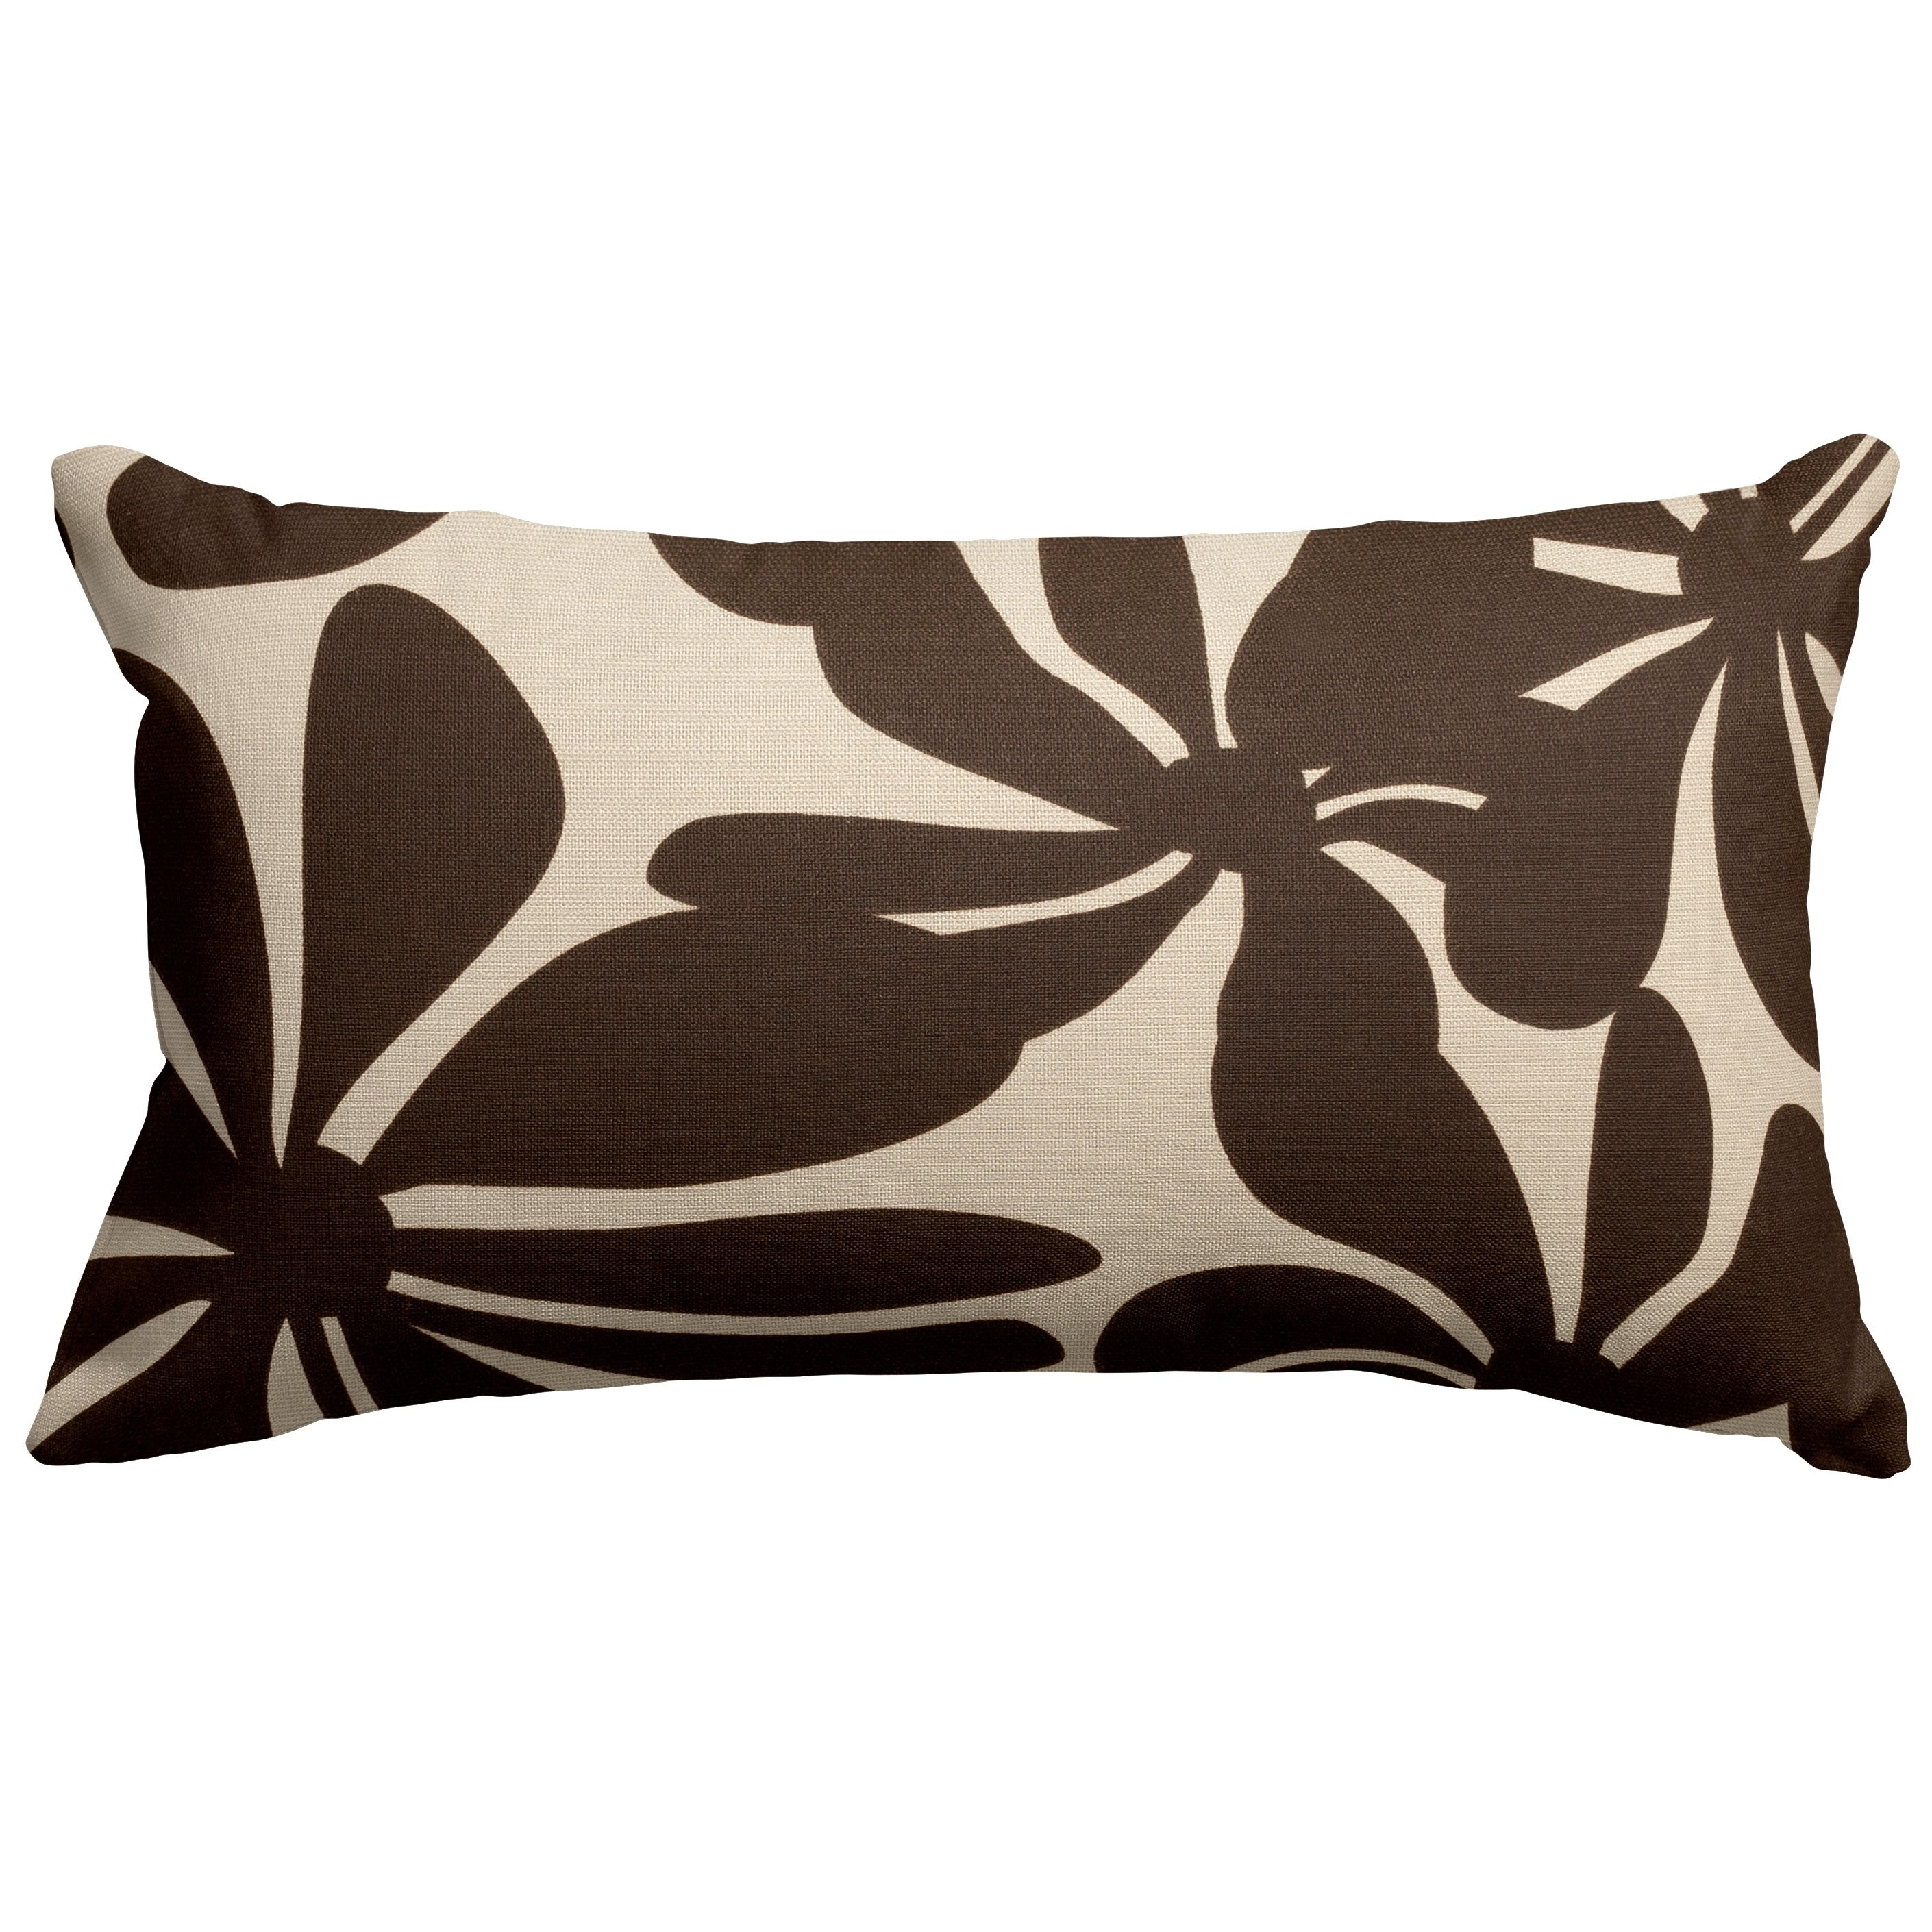 Majestic Home Goods Indoor Outdoor Plantation Small Decorative Throw Pillow 20 X 12 Overstock 22277155